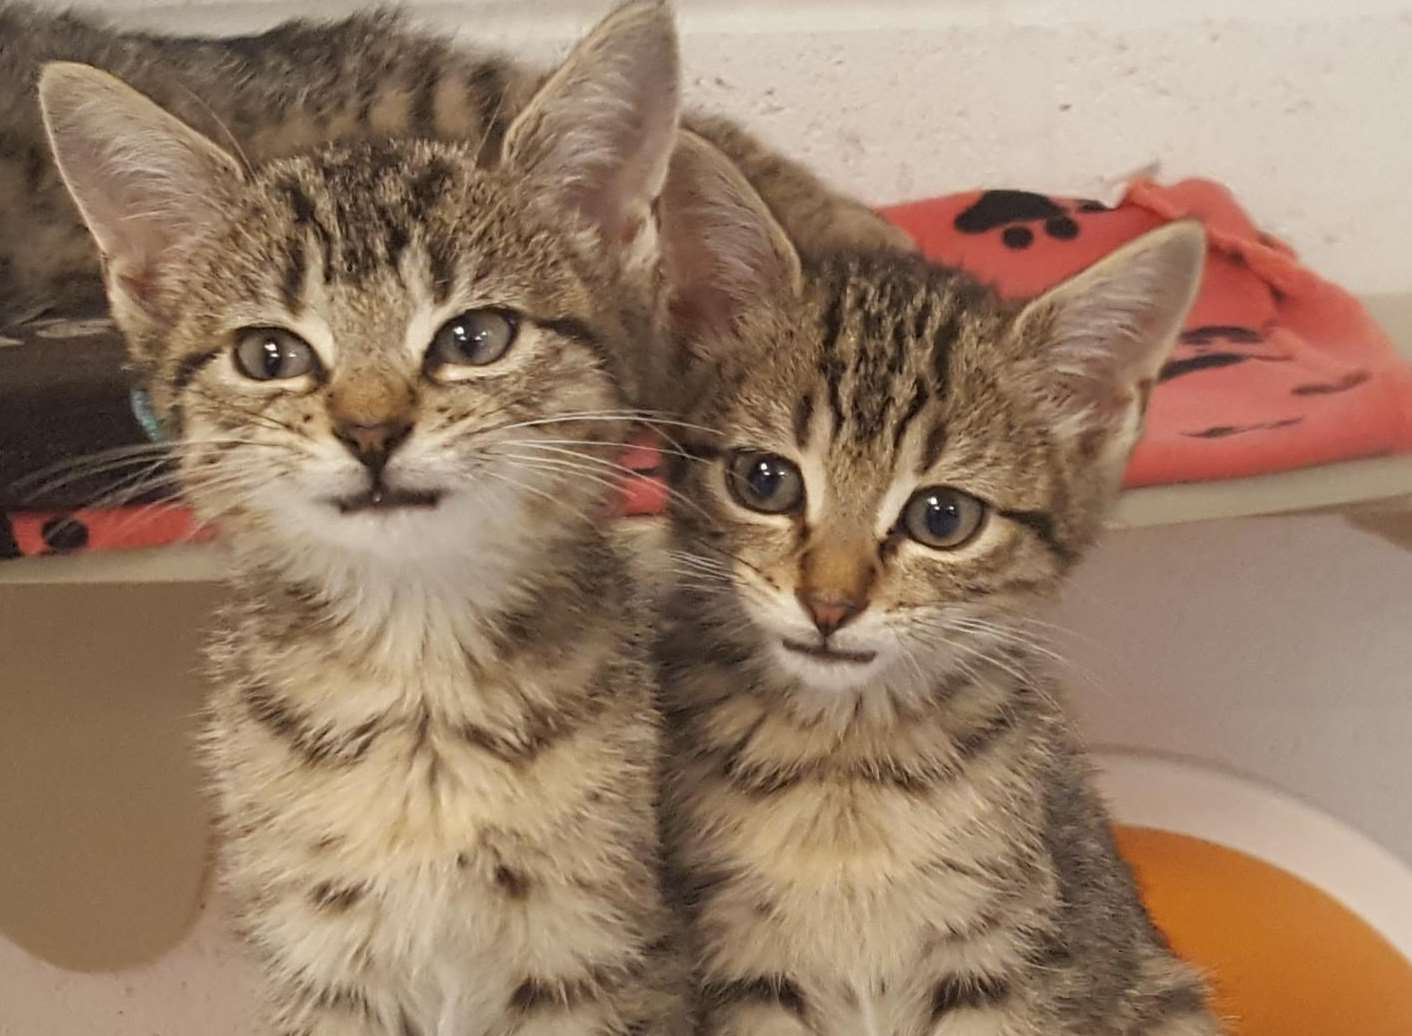 These adorable kittens, and many other cats, are looking for new owners